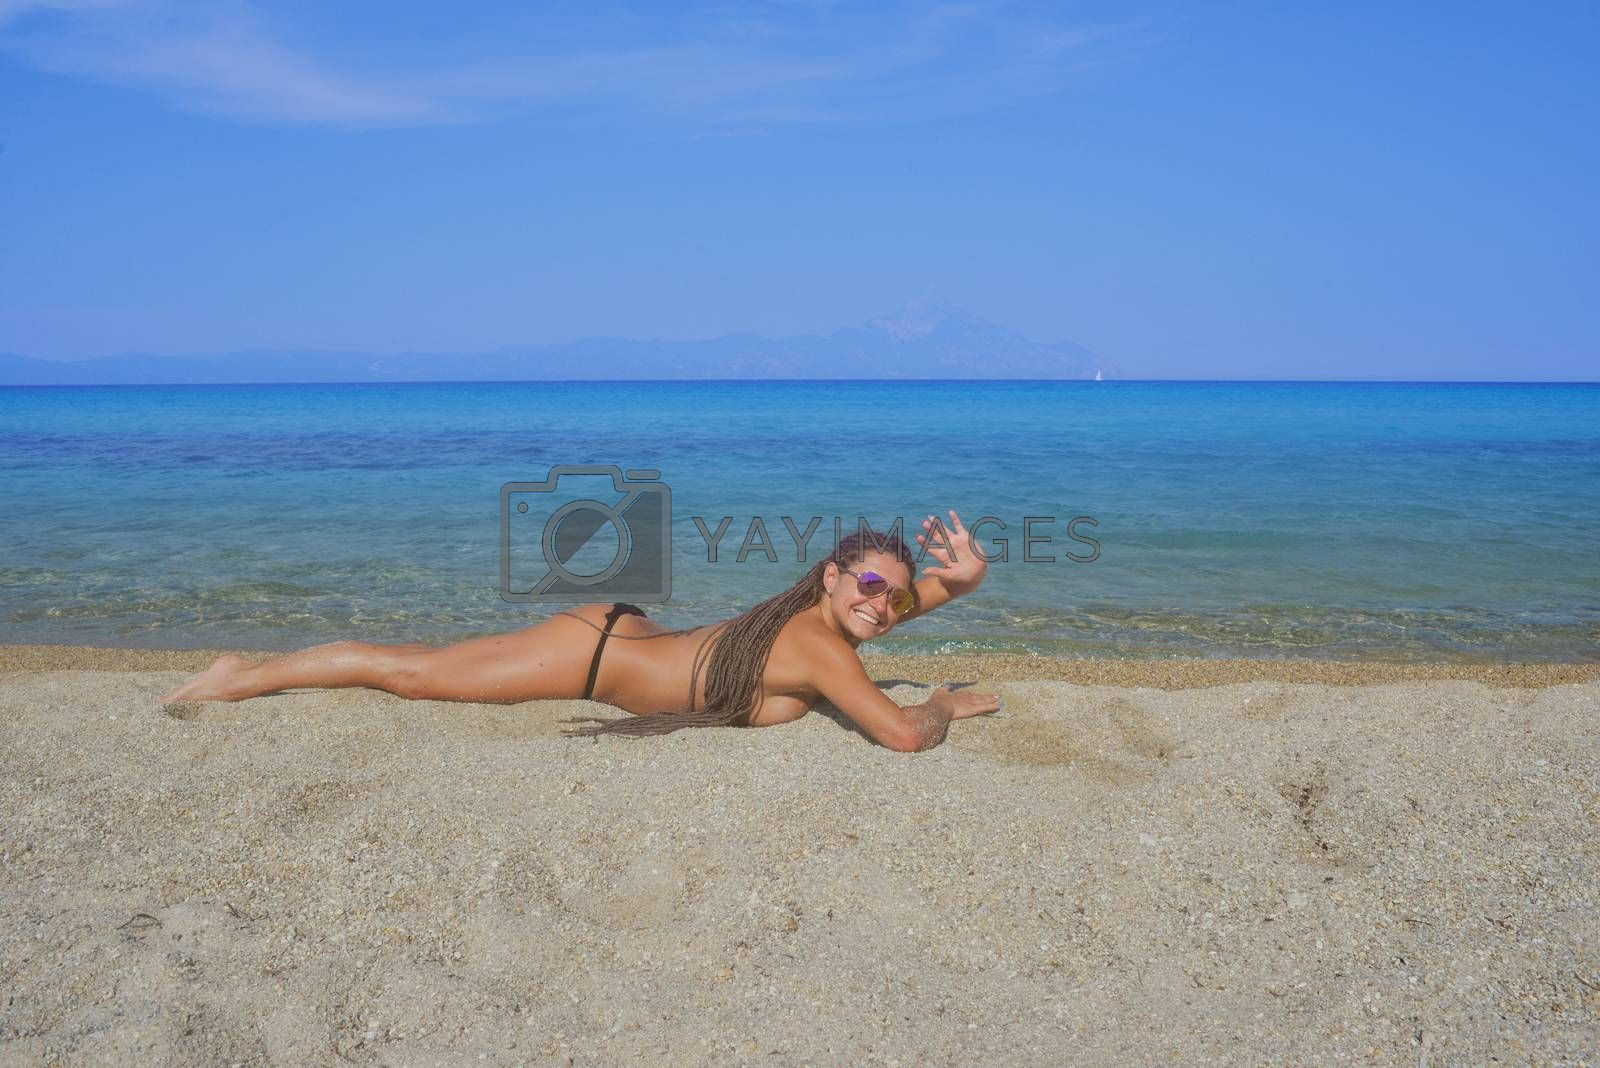 A beautiful woman with bikini on a quiet distant sand beach waving to camera.